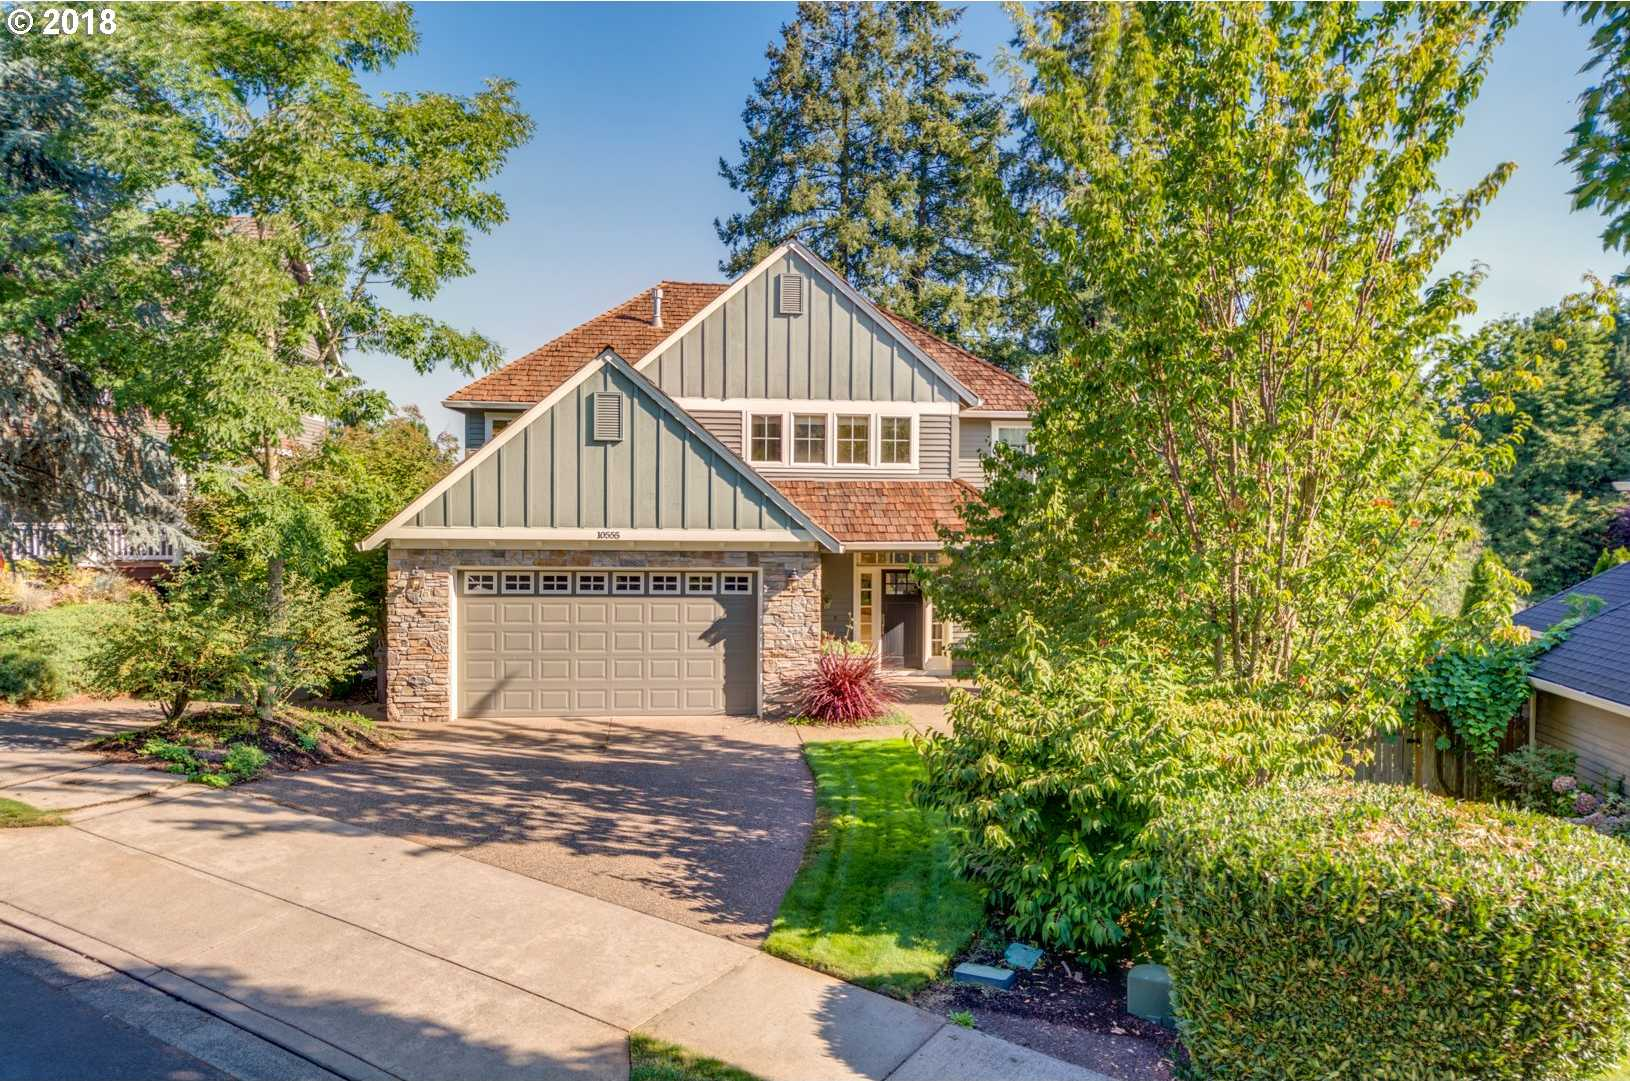 $684,950 - 4Br/3Ba -  for Sale in Tualatin